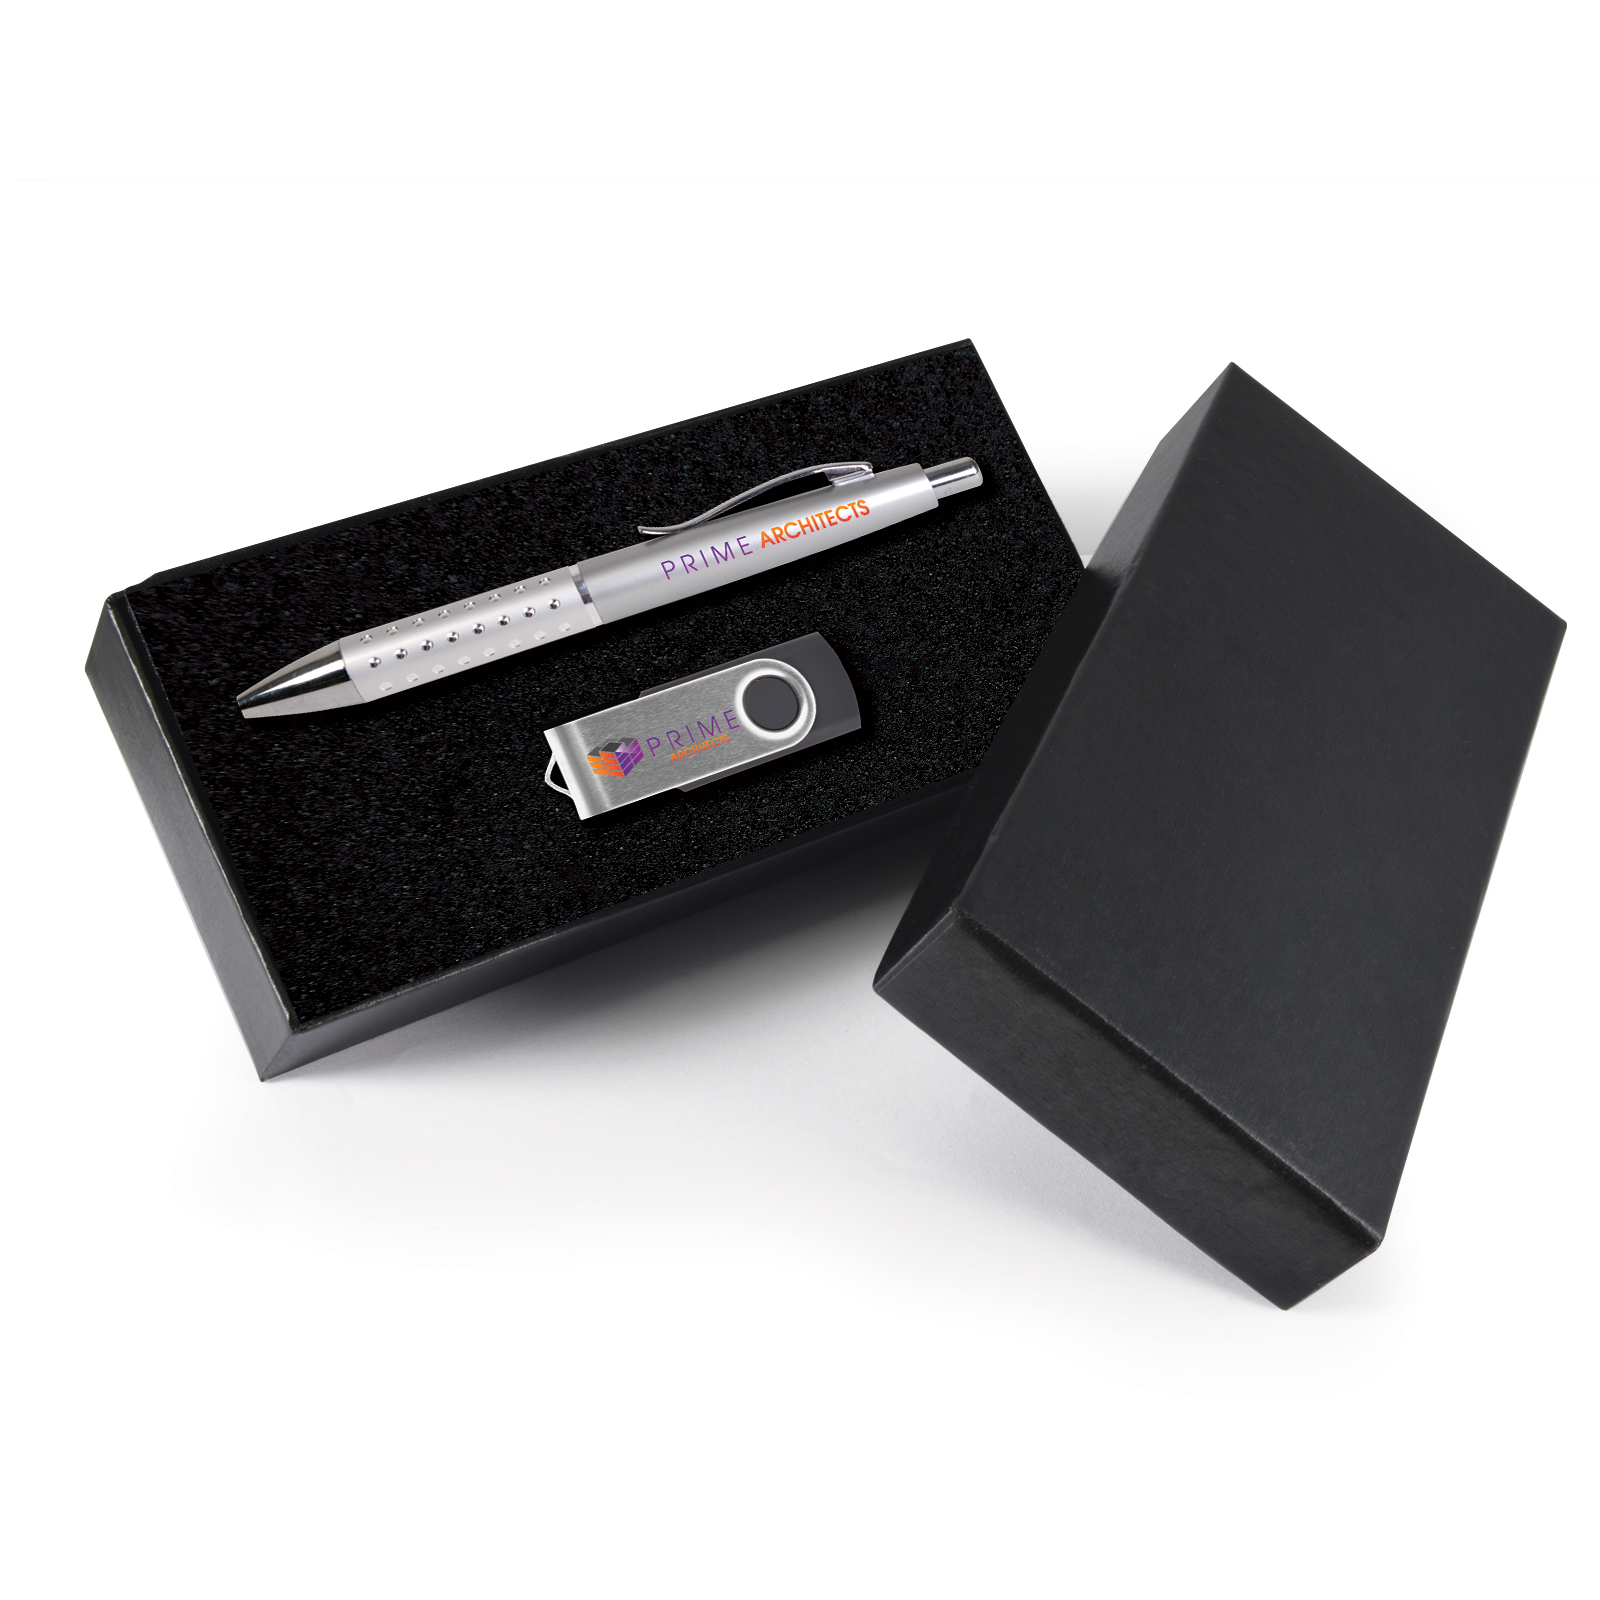 Symphony Gift Set - 2 Pos Digital Print - Pen + Flash Drive